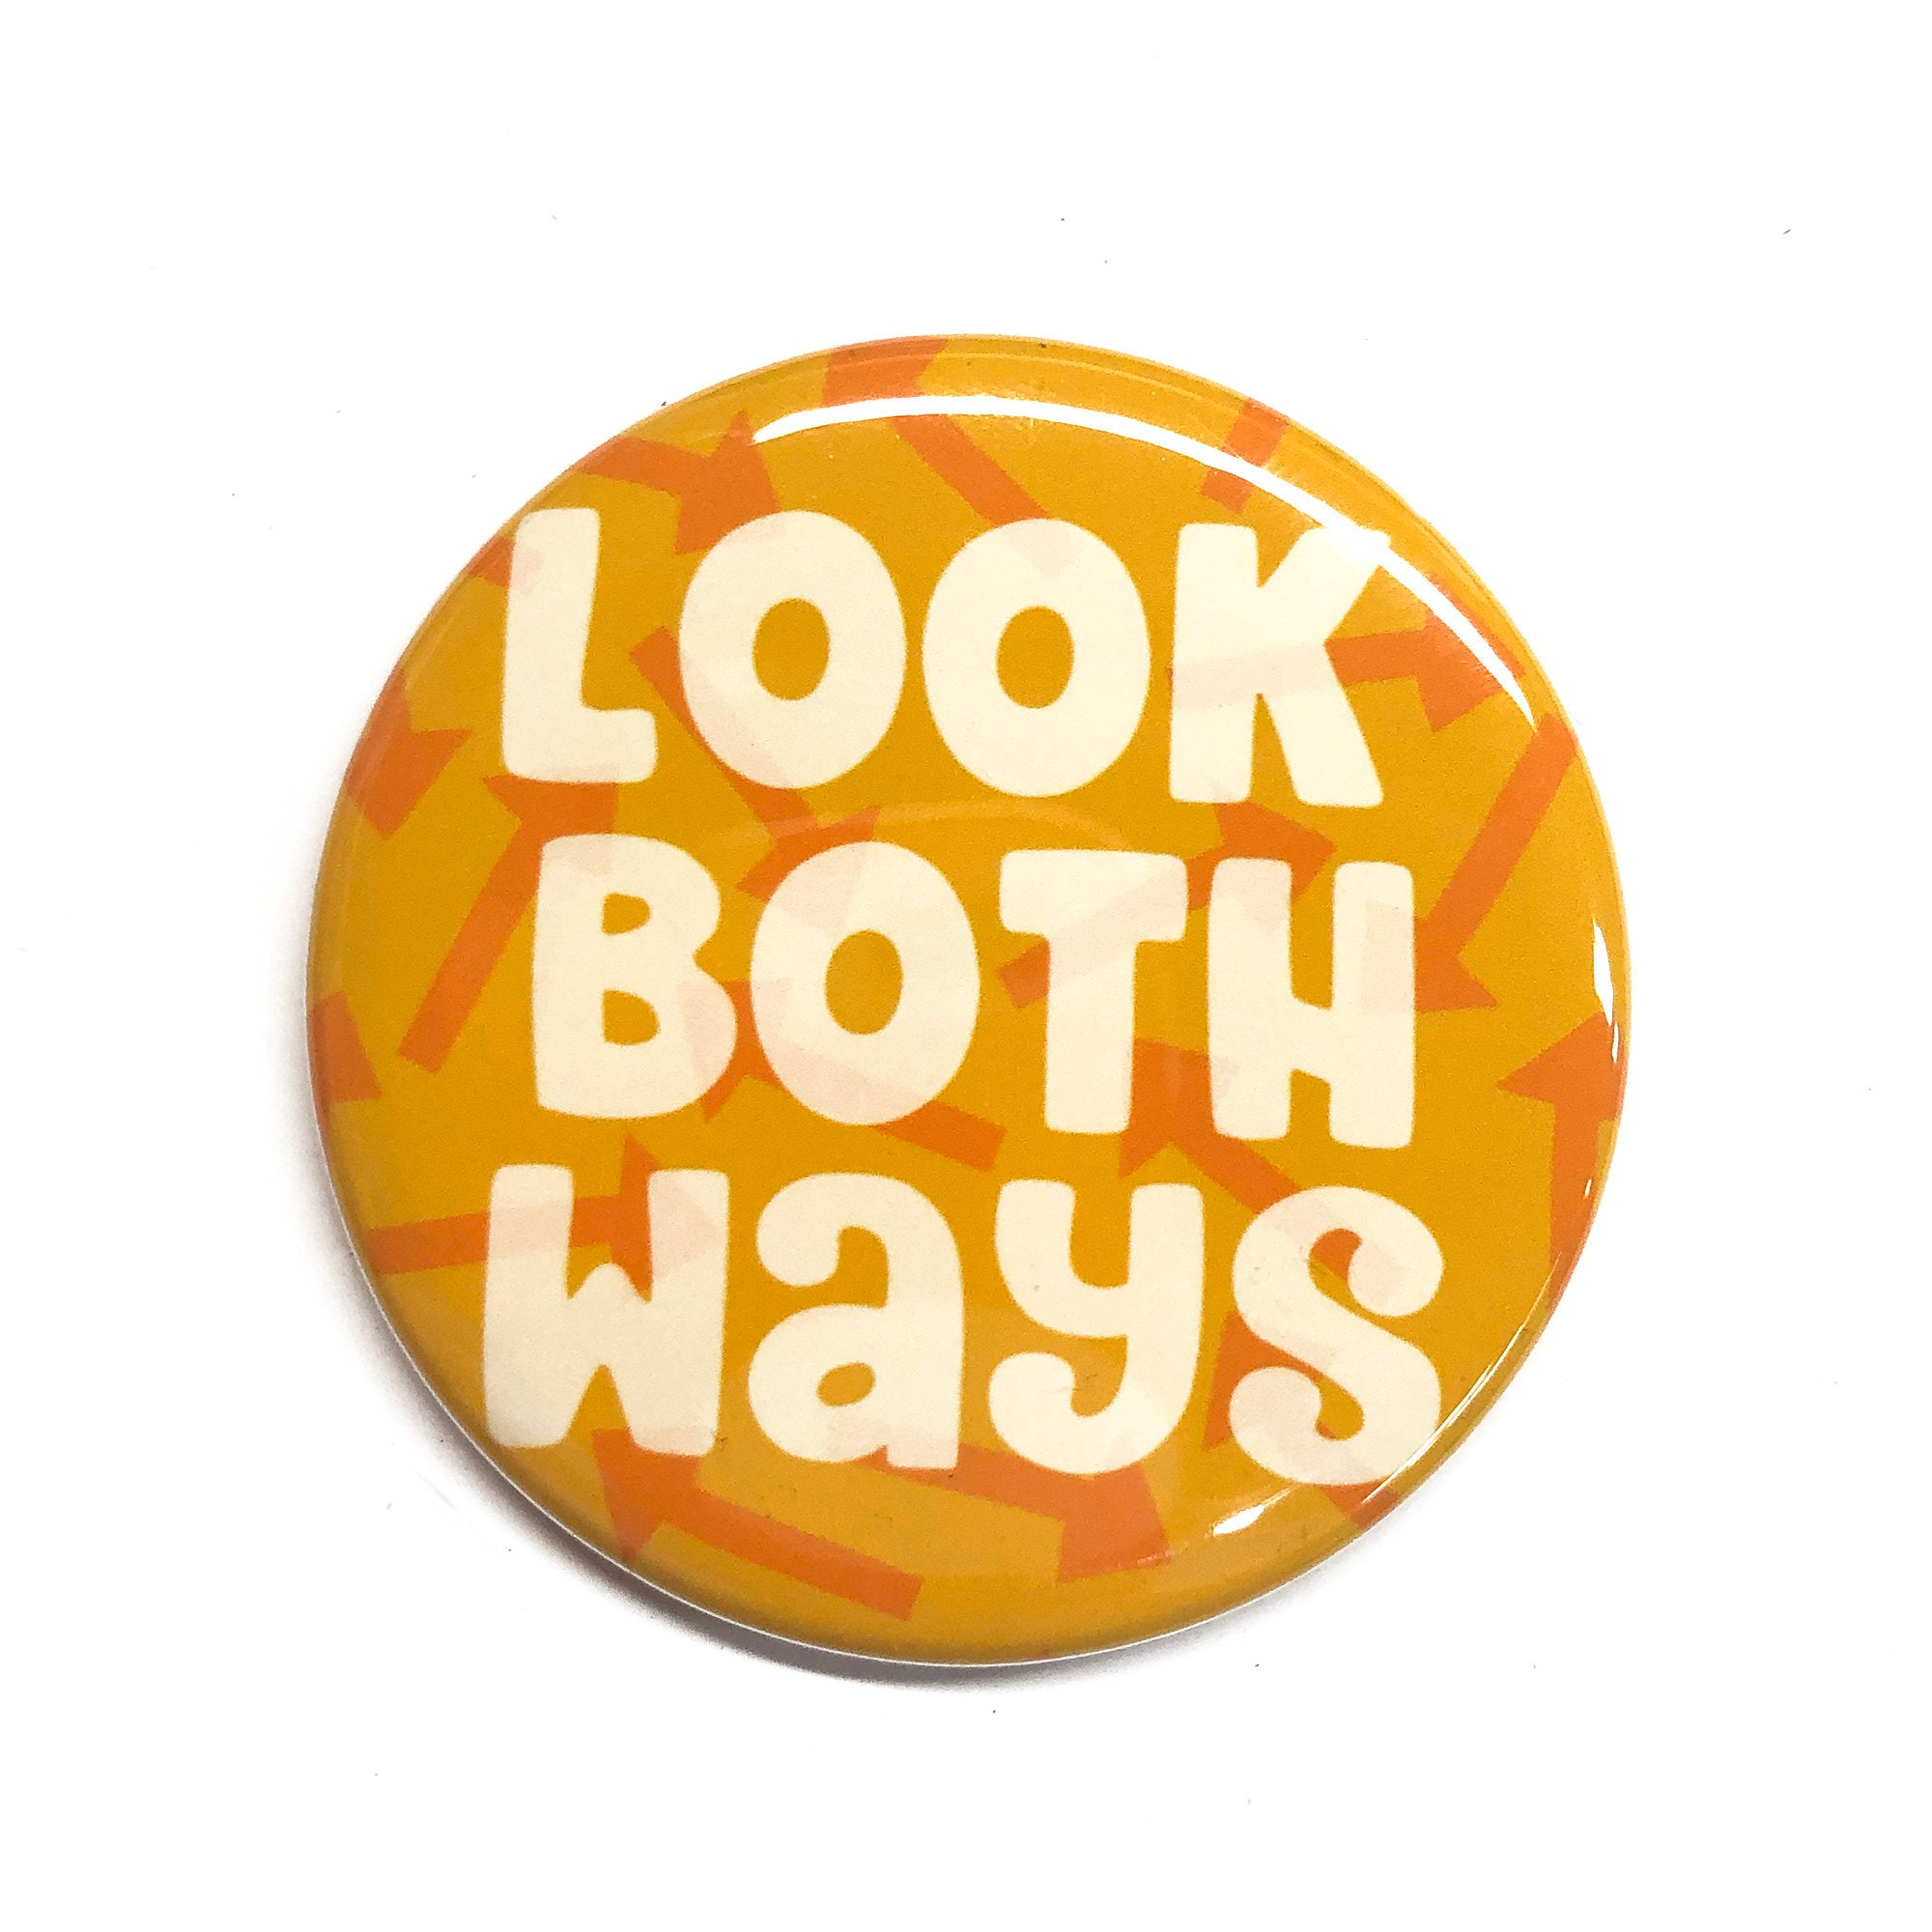 Look Both Ways Magnet, Pin, or Mirror